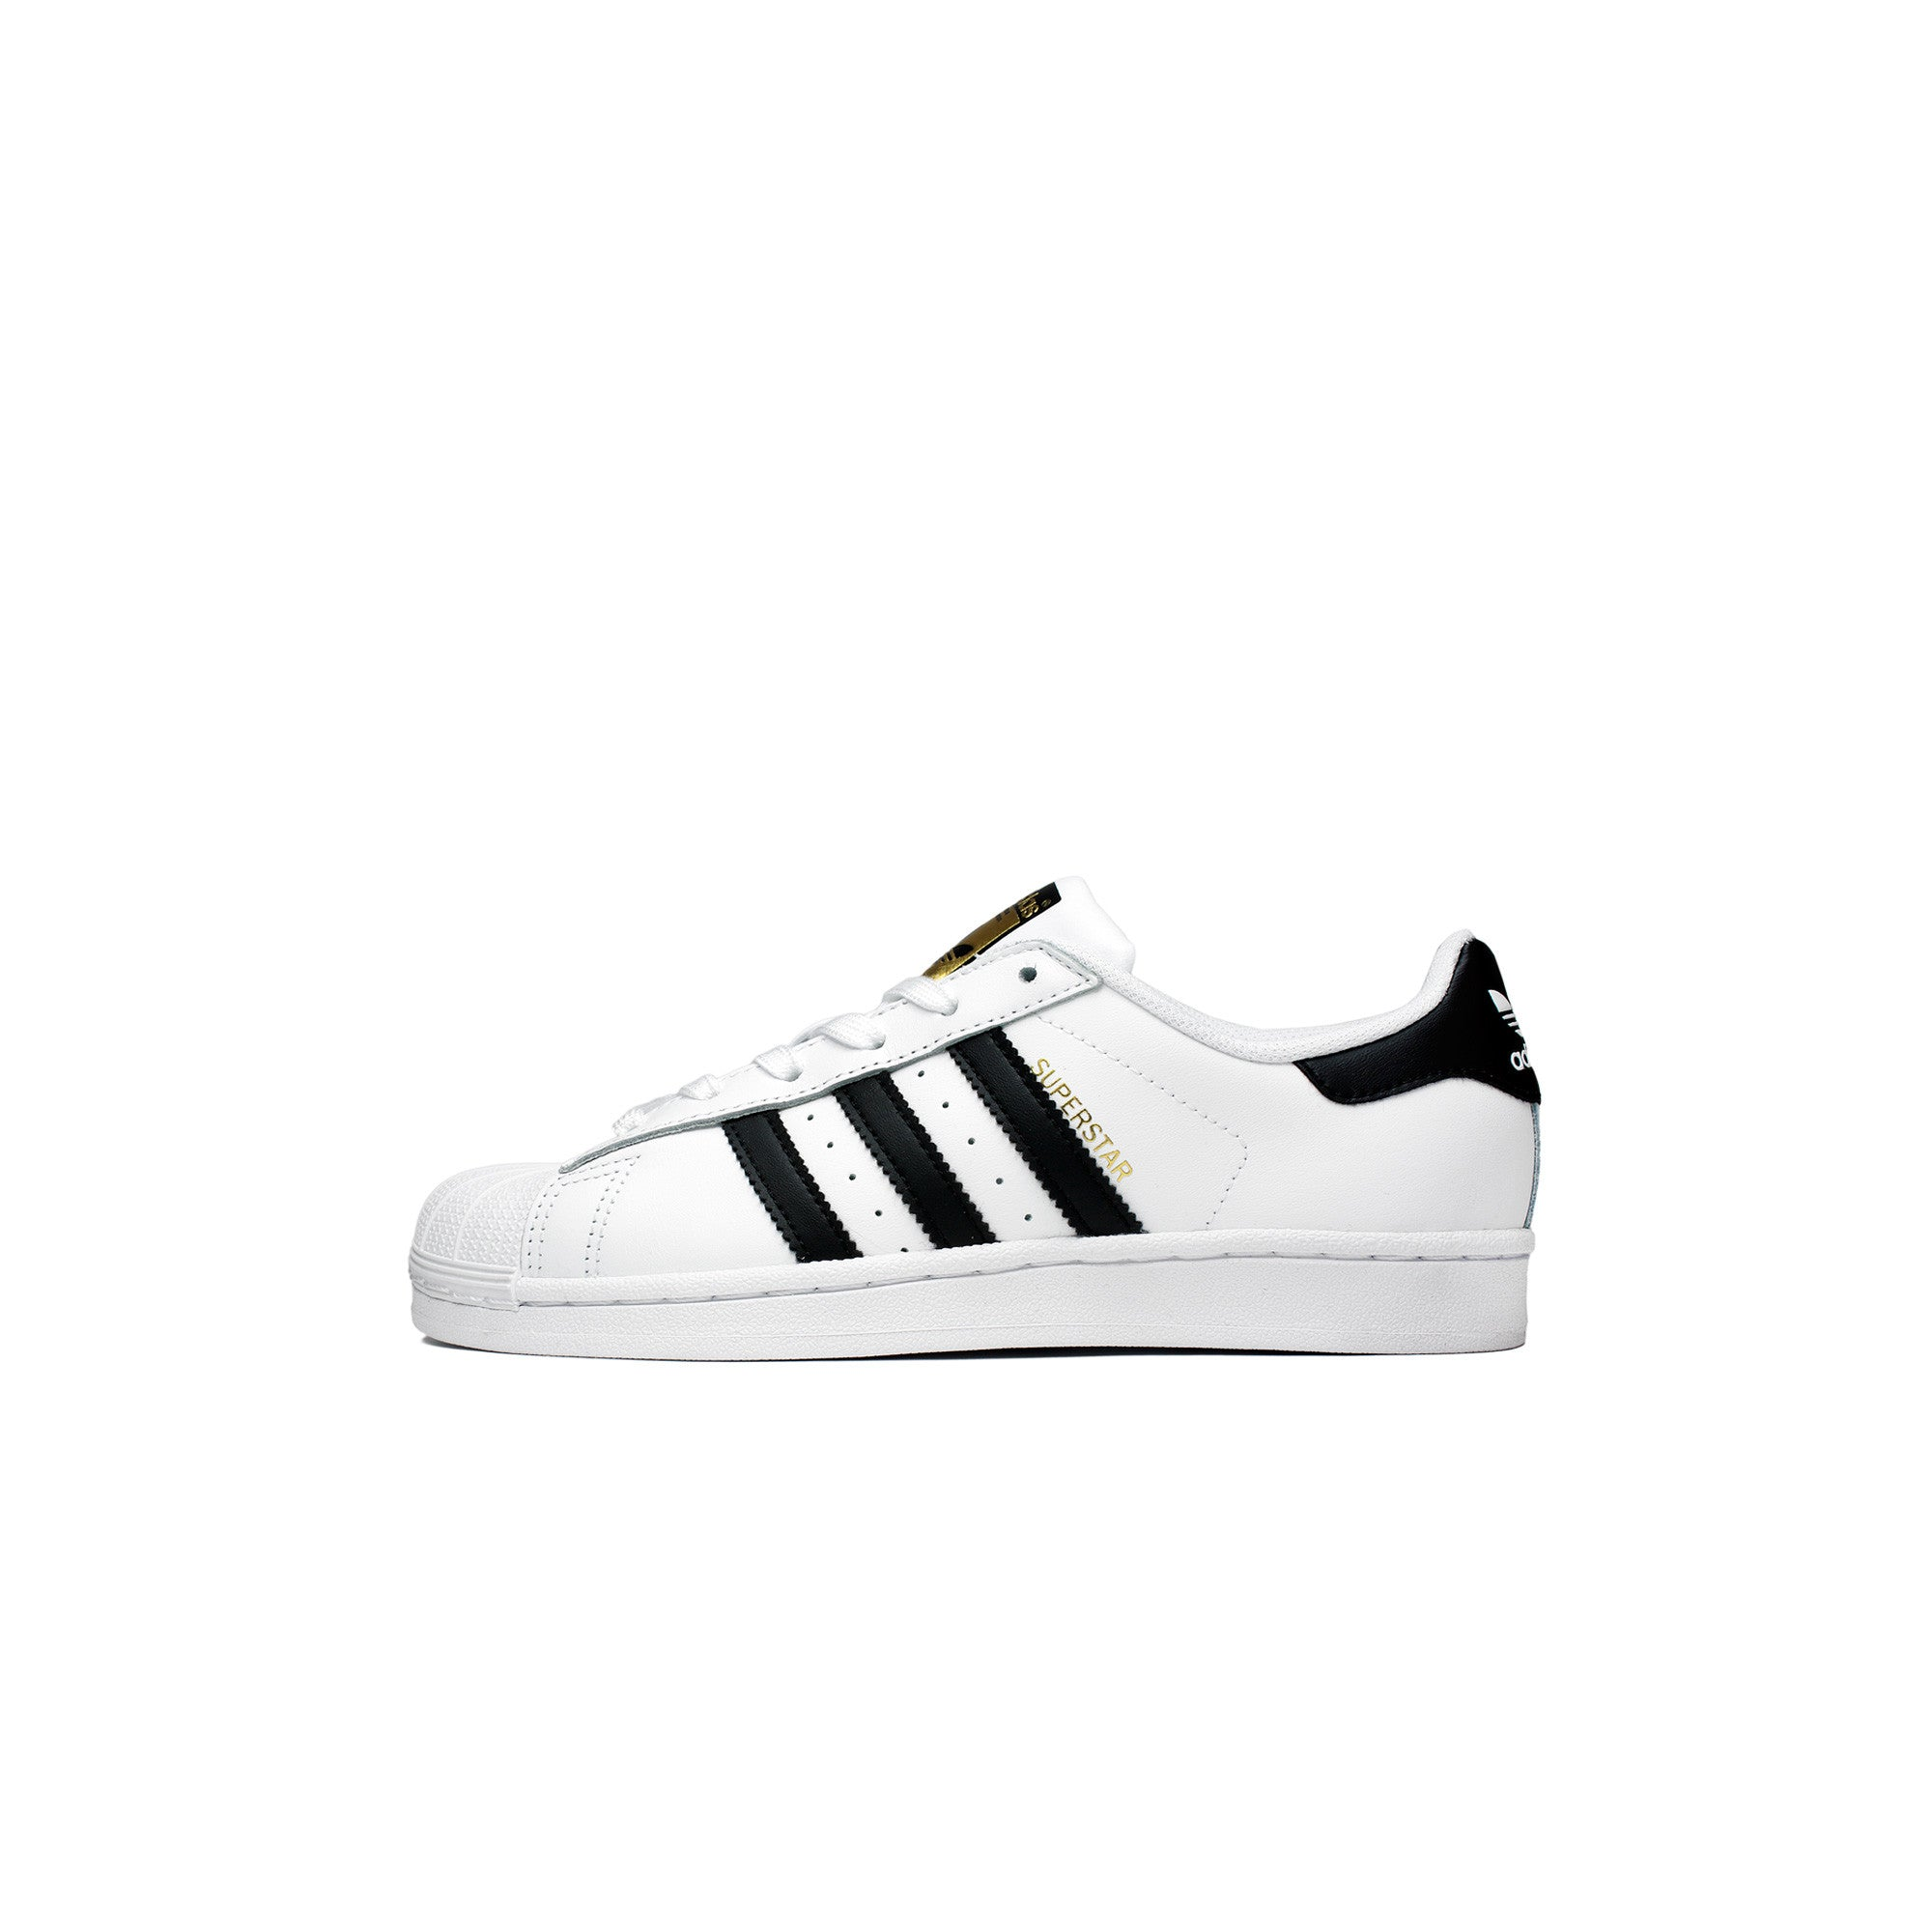 reputable site c89b1 acc17 Adidas Youth Superstar C77154